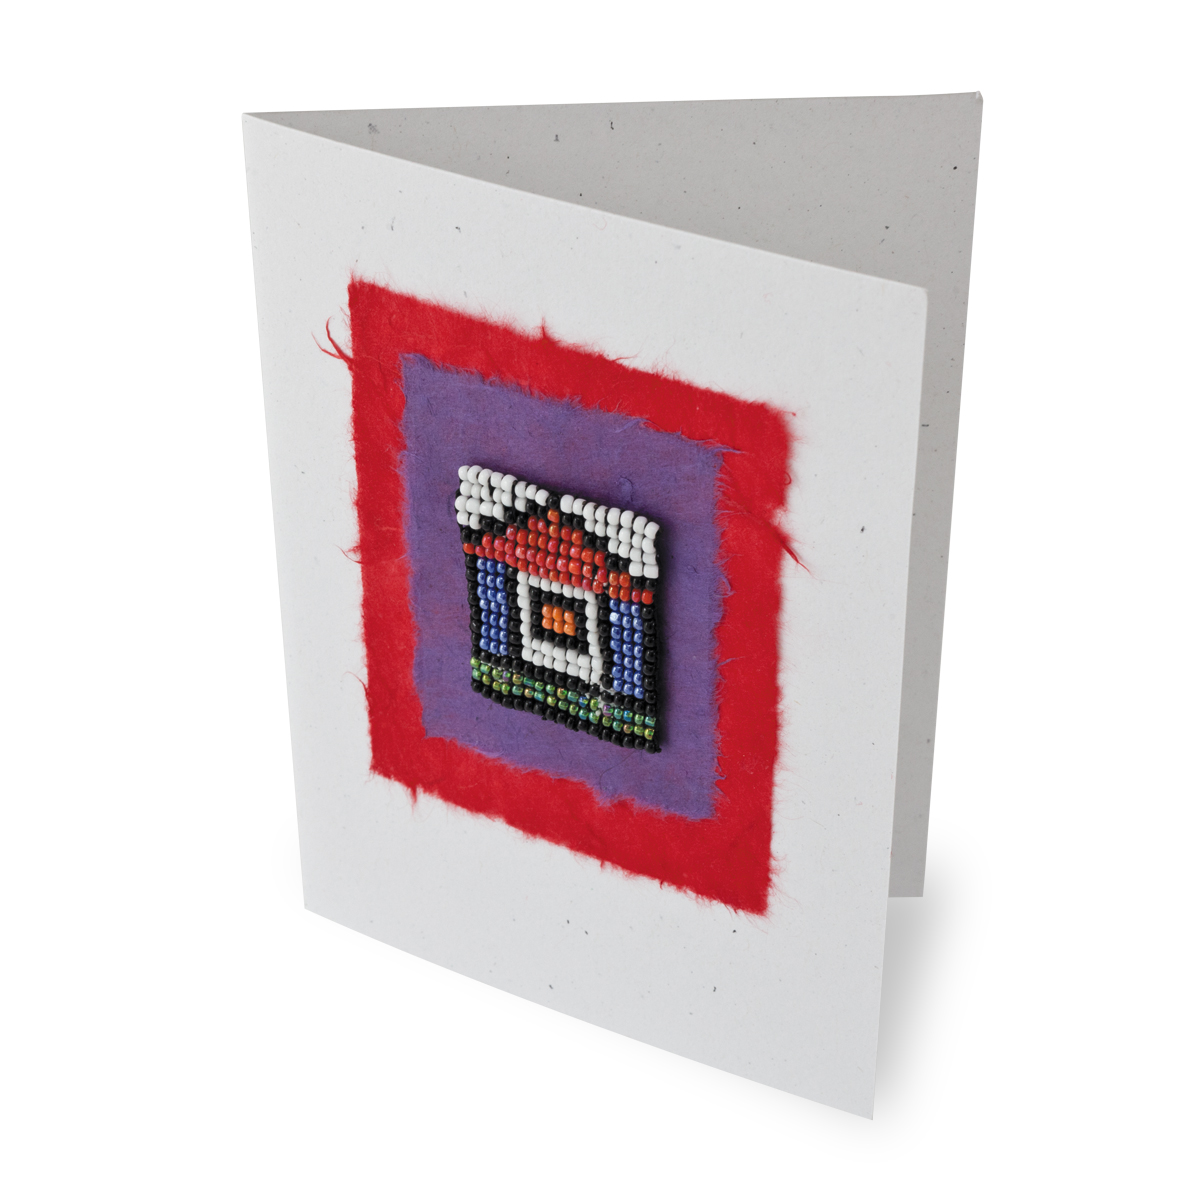 Kidz Positive greetings cards